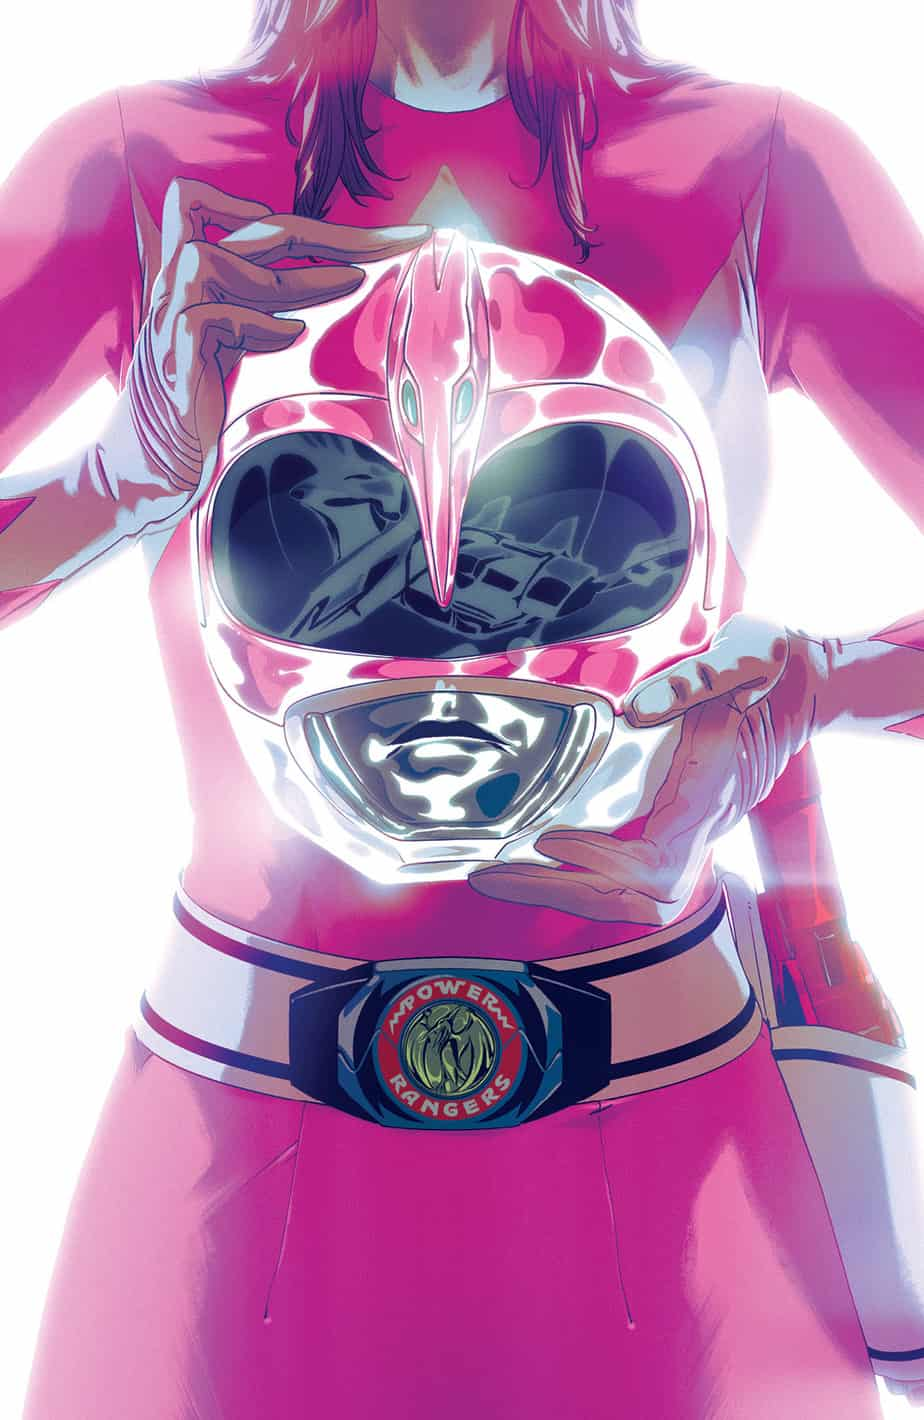 Mighty Morphin Power Rangers #42 - Foil Cover